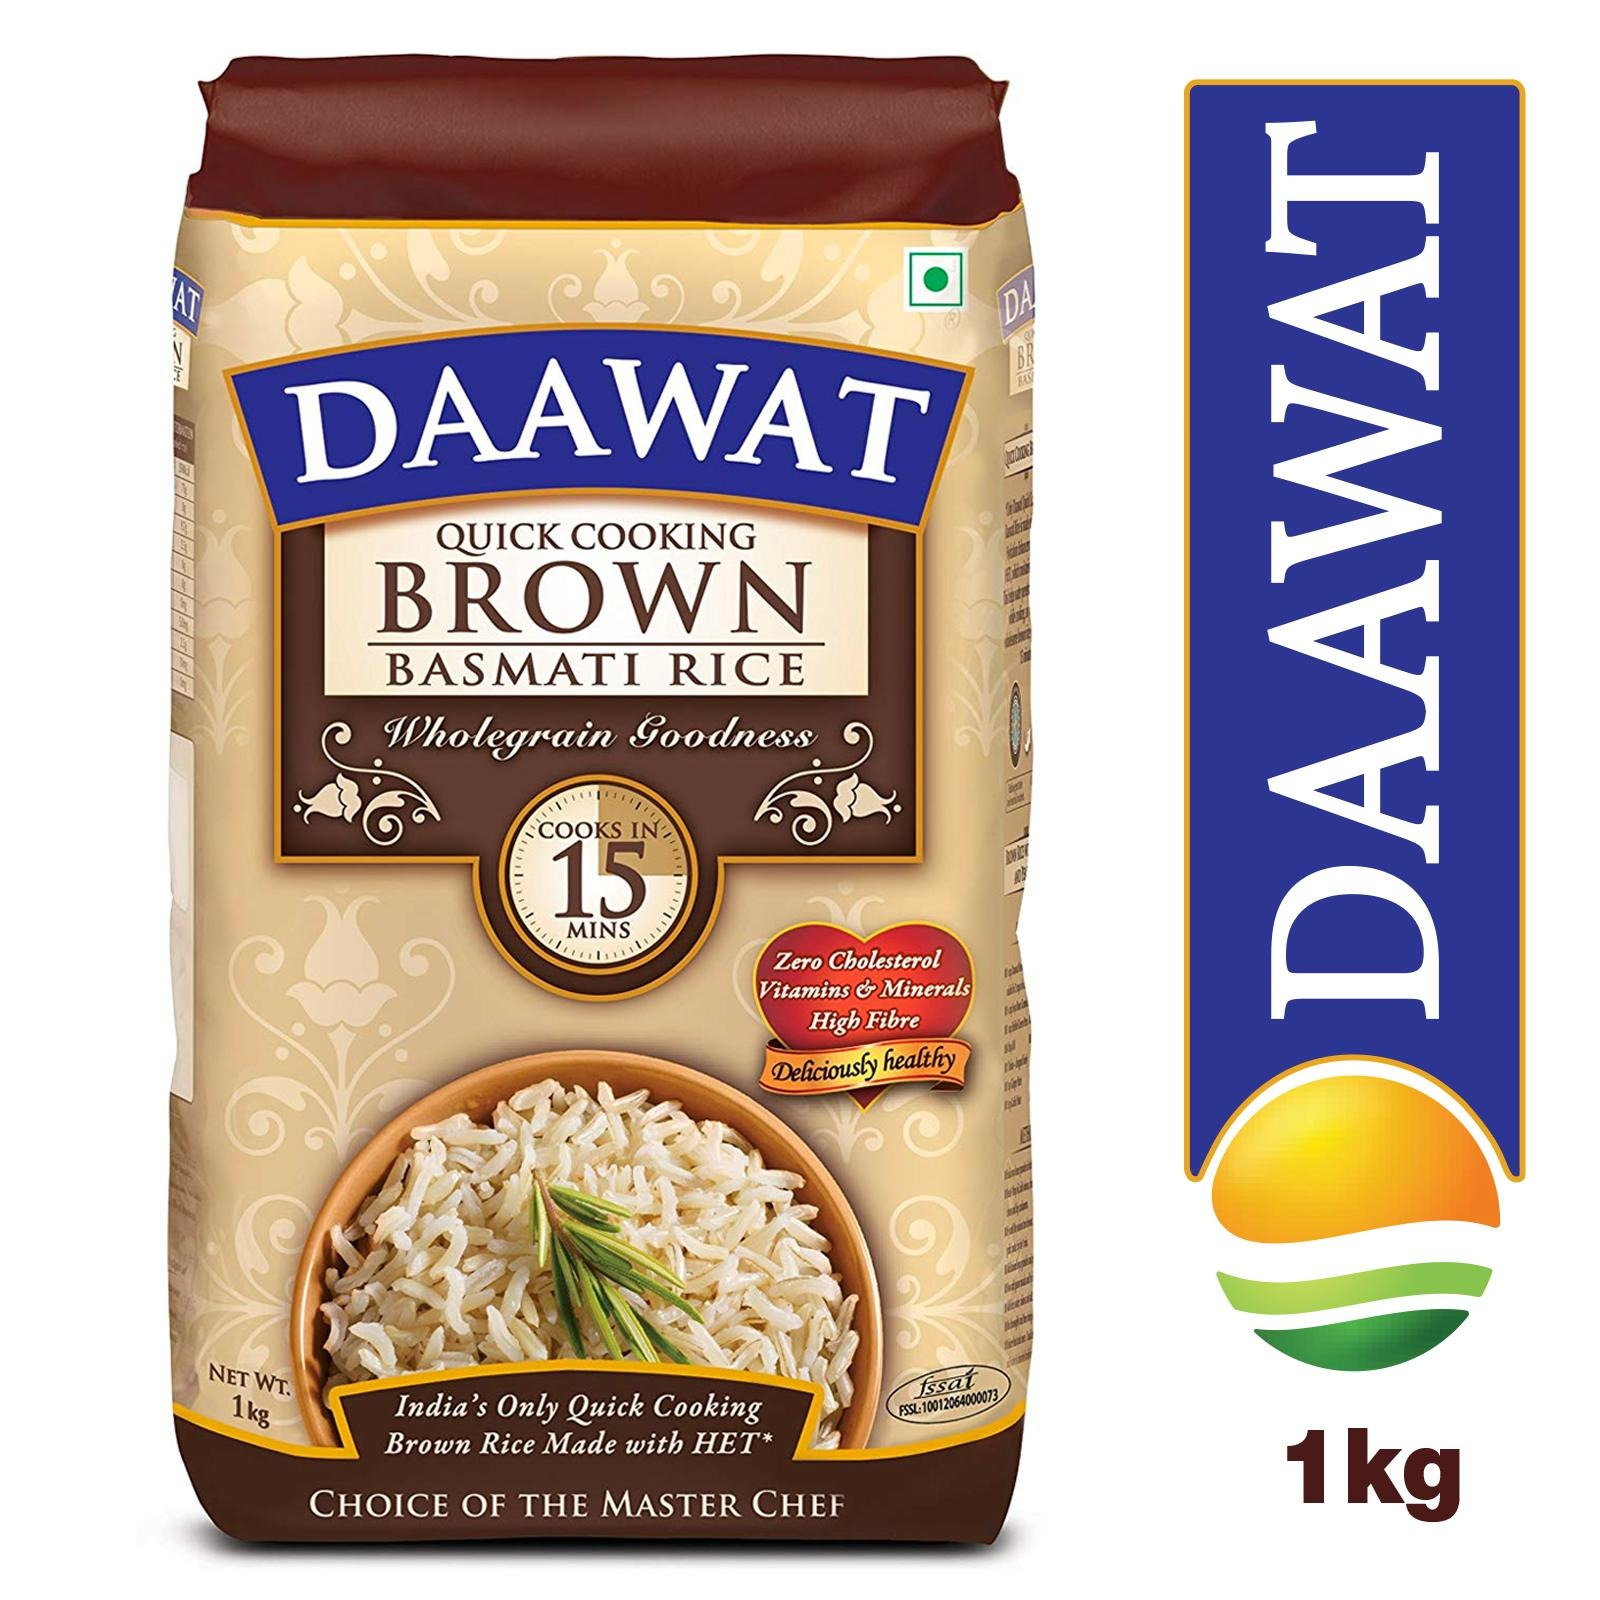 Daawat Quick Cooking Brown Basmati Rice - By Sonnamera